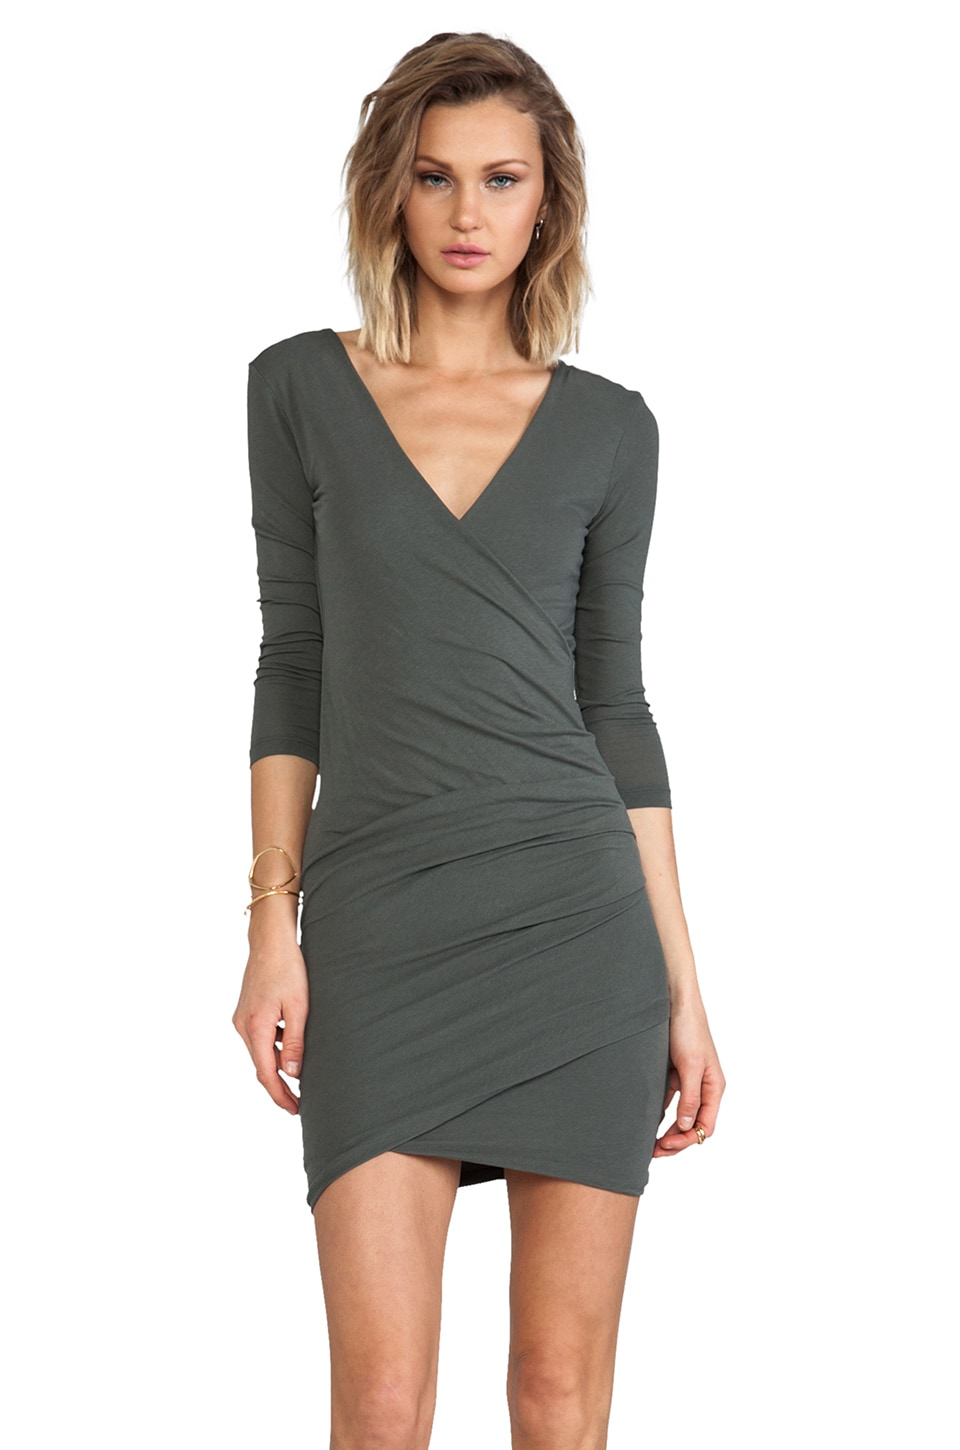 James Perse Skinny Wrap Tuck Dress in Forest Green